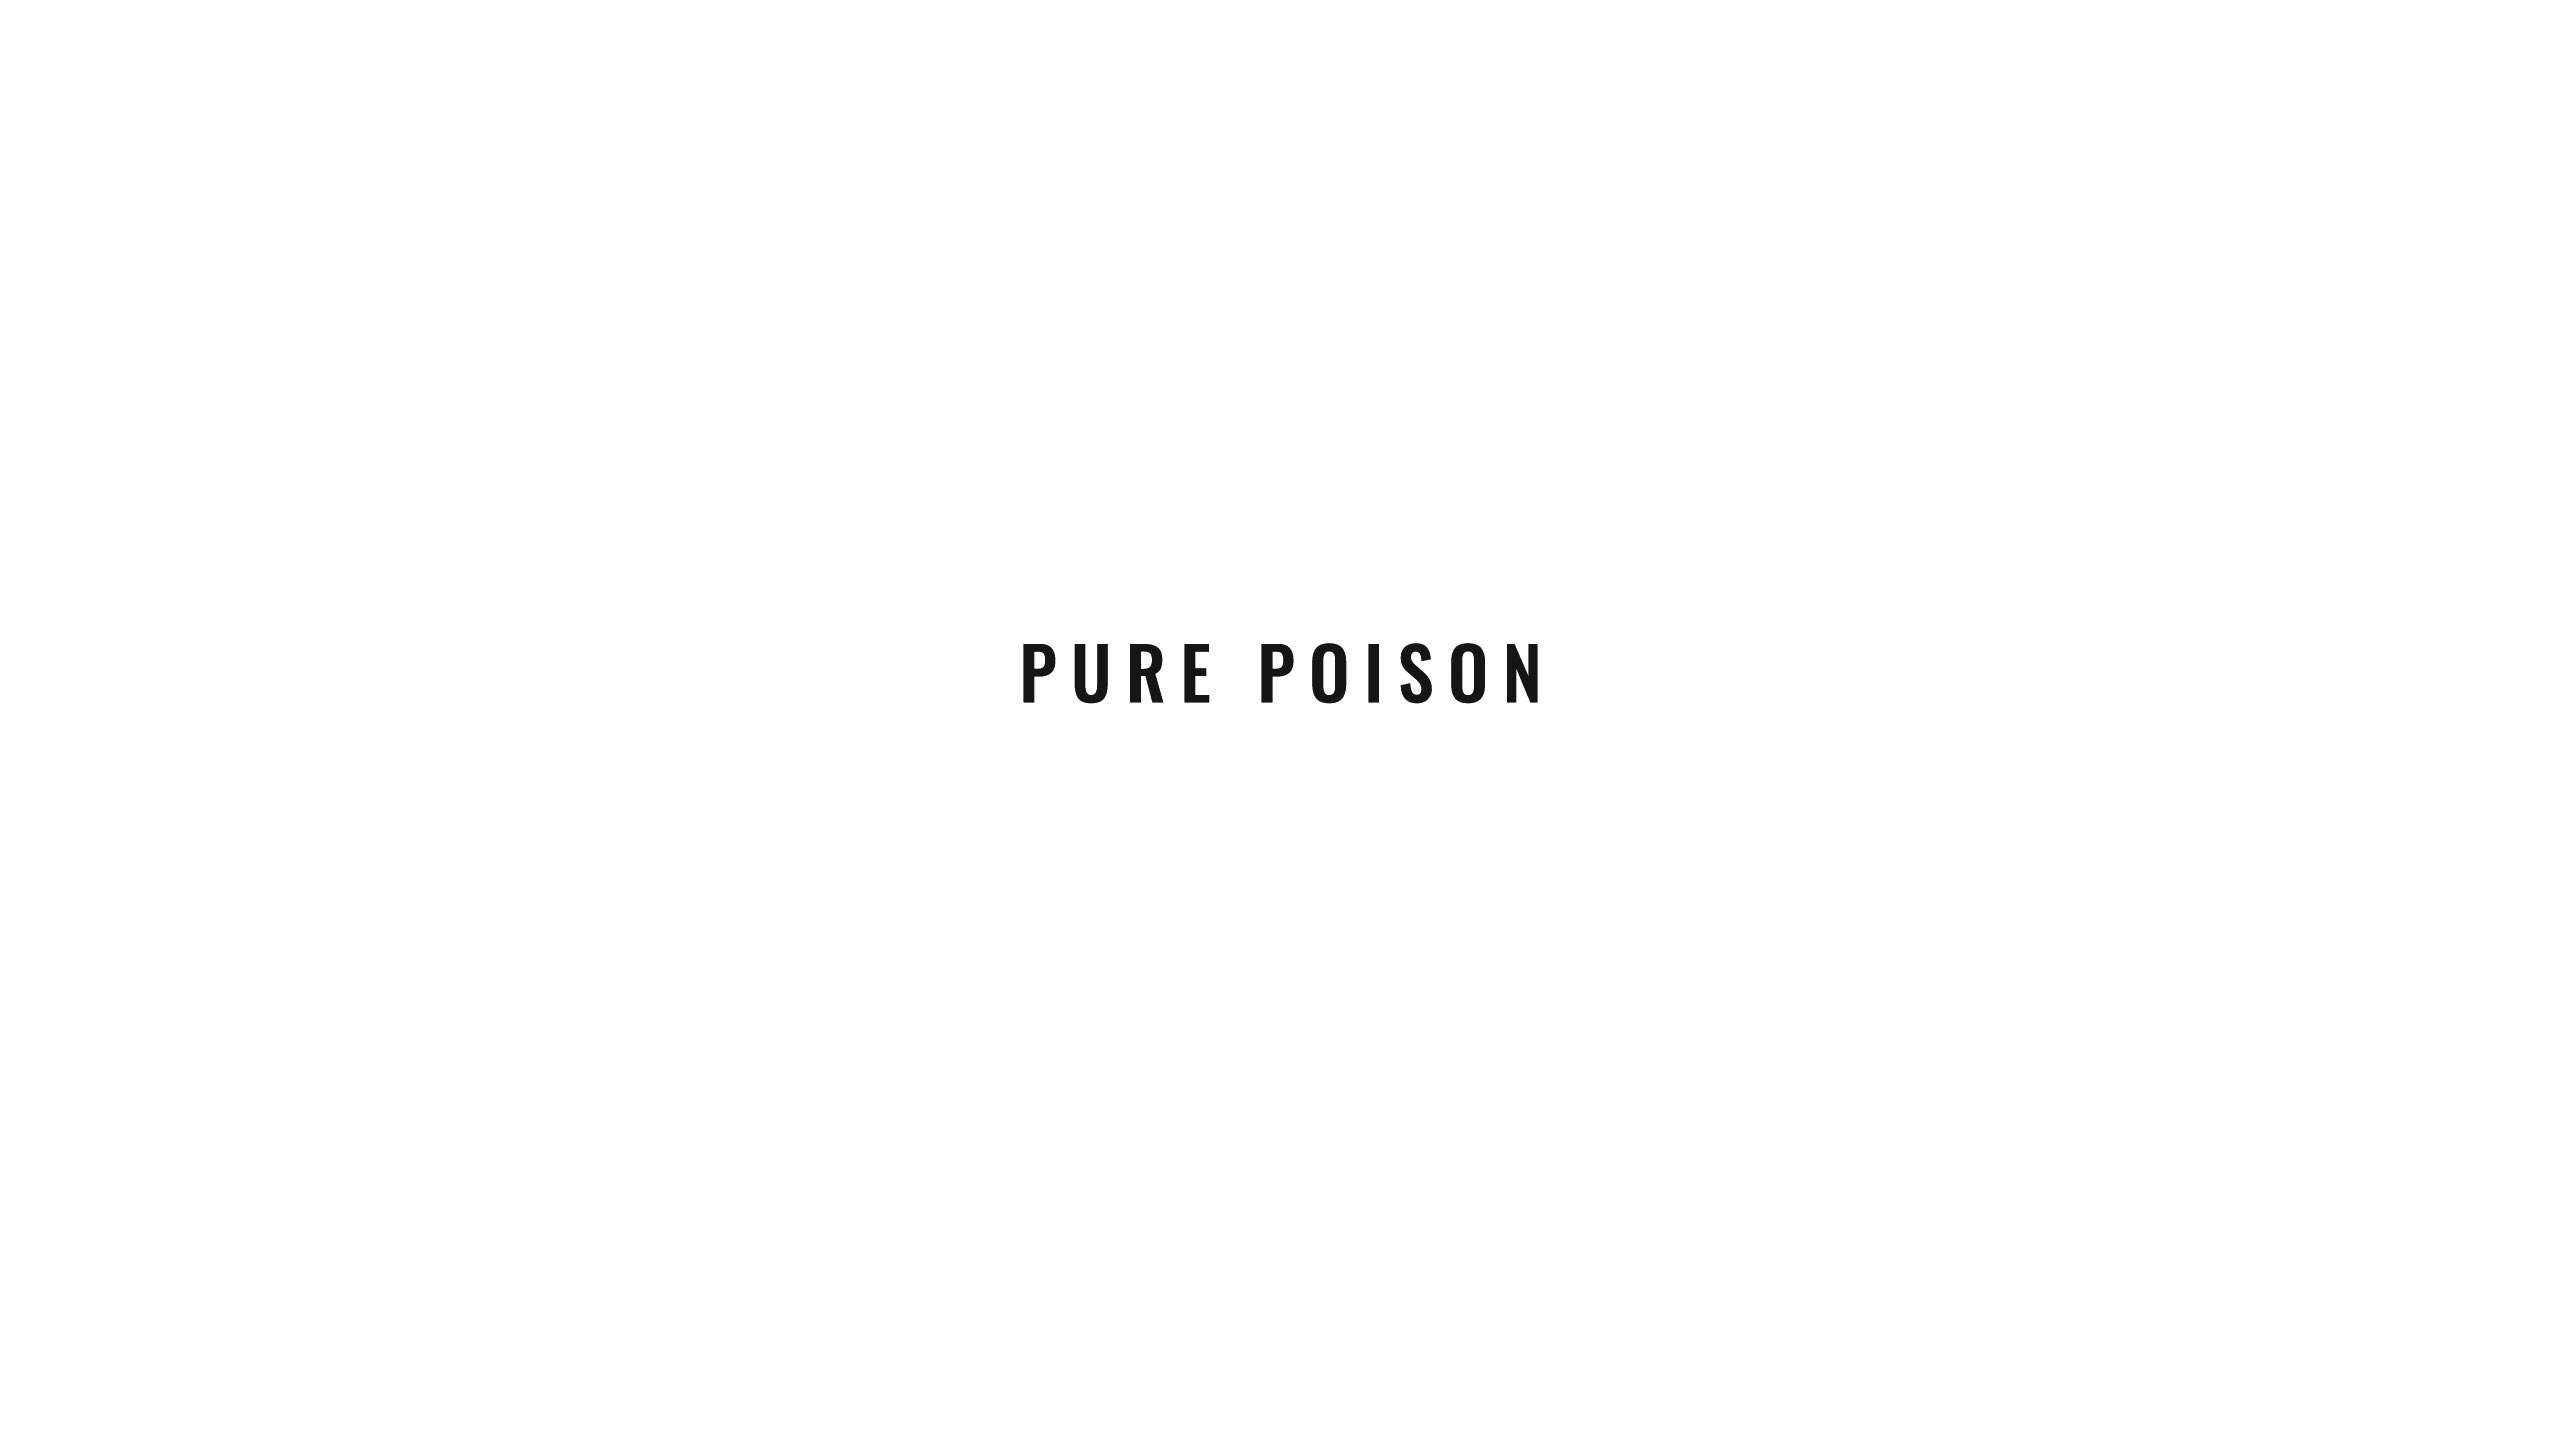 1a_Text_PURE_POISON